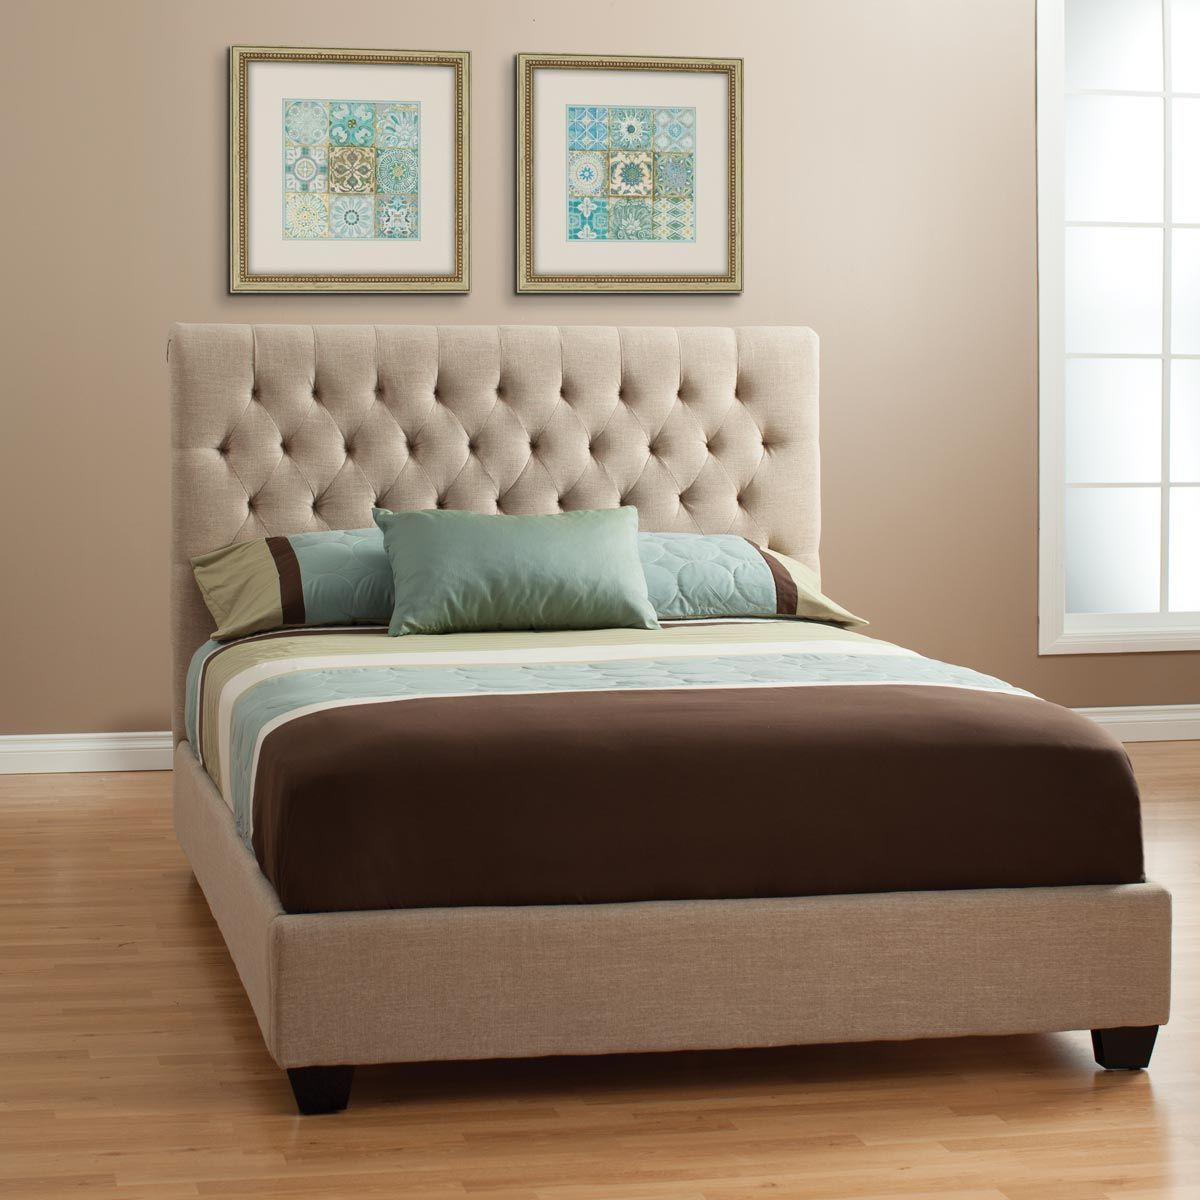 The Natural Look Of The Chloe Upholstered Bed Sets A Mood That Begs For Total Relaxation Thick Padd Upholstered Beds Fabric Upholstered Bed Jerome S Furniture